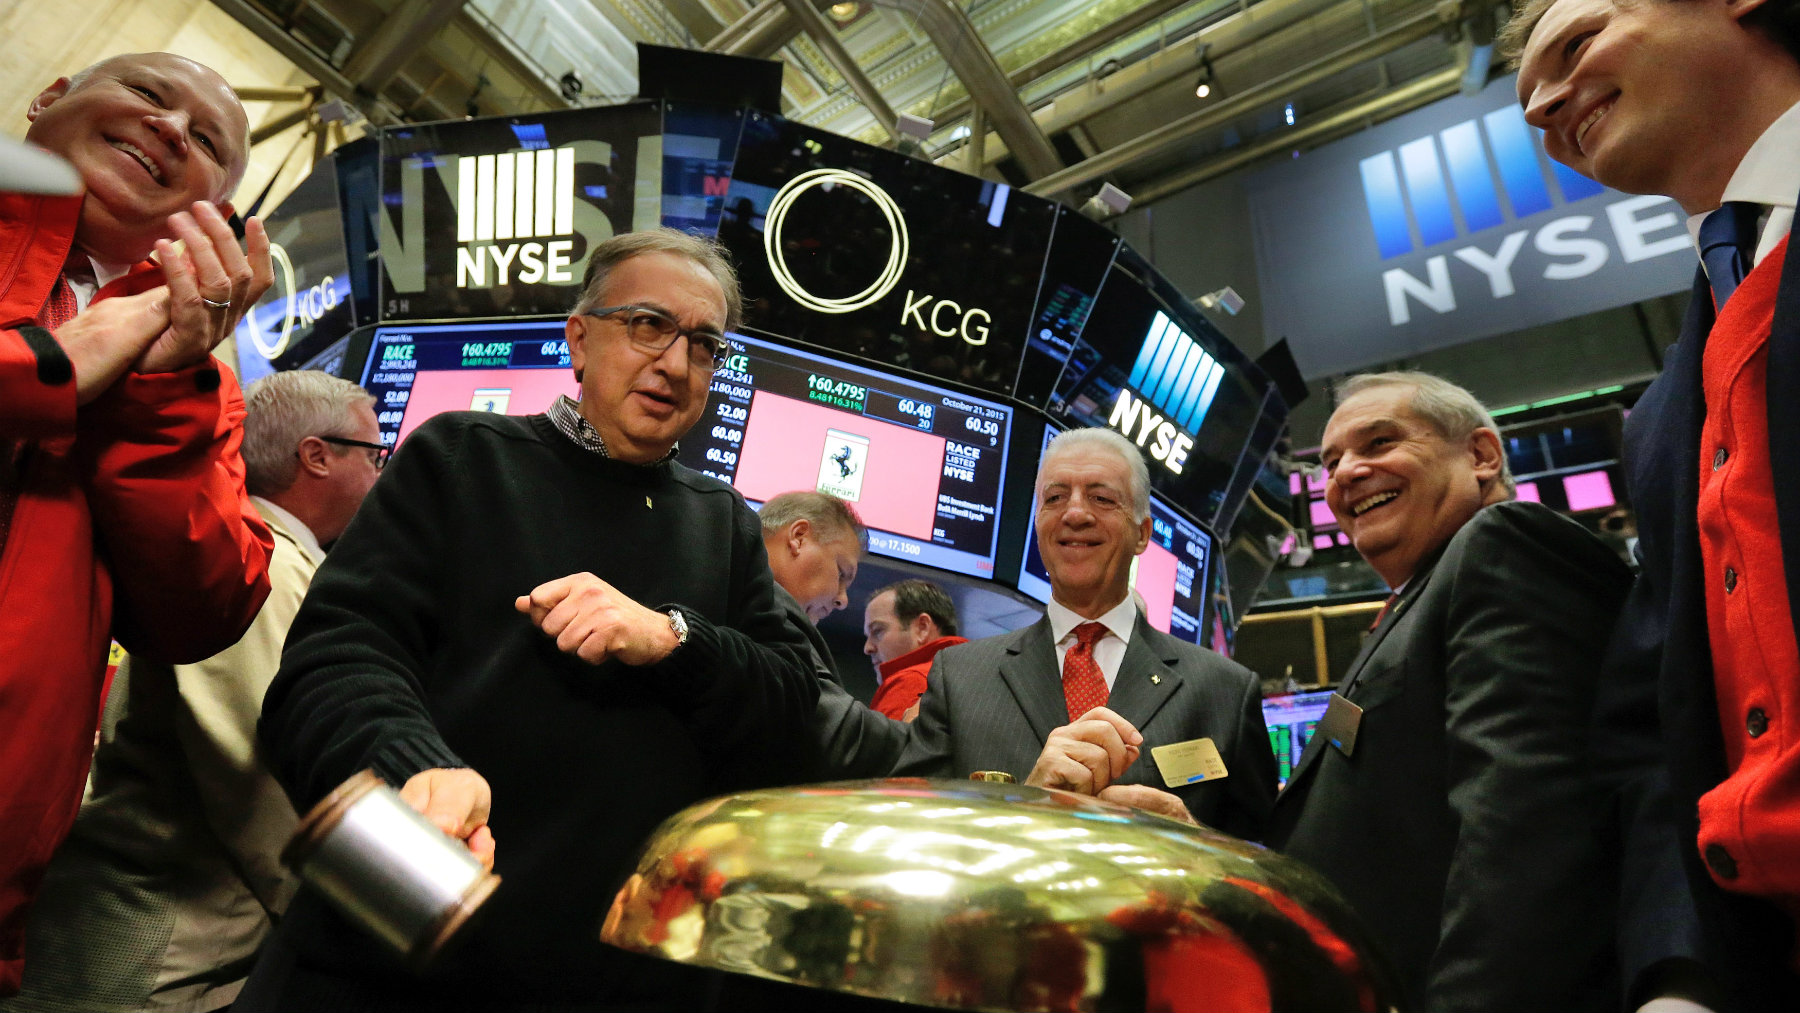 From second left, Fiat Chrysler CEO Sergio Marchionne, Piero Ferrari, son of founder Enzo Ferrari, Ferrari CEO Amedeo Felisa, and Fiat Chrysler chairman John Elkann ring a ceremonial bell to open the New York Stock Exchange.